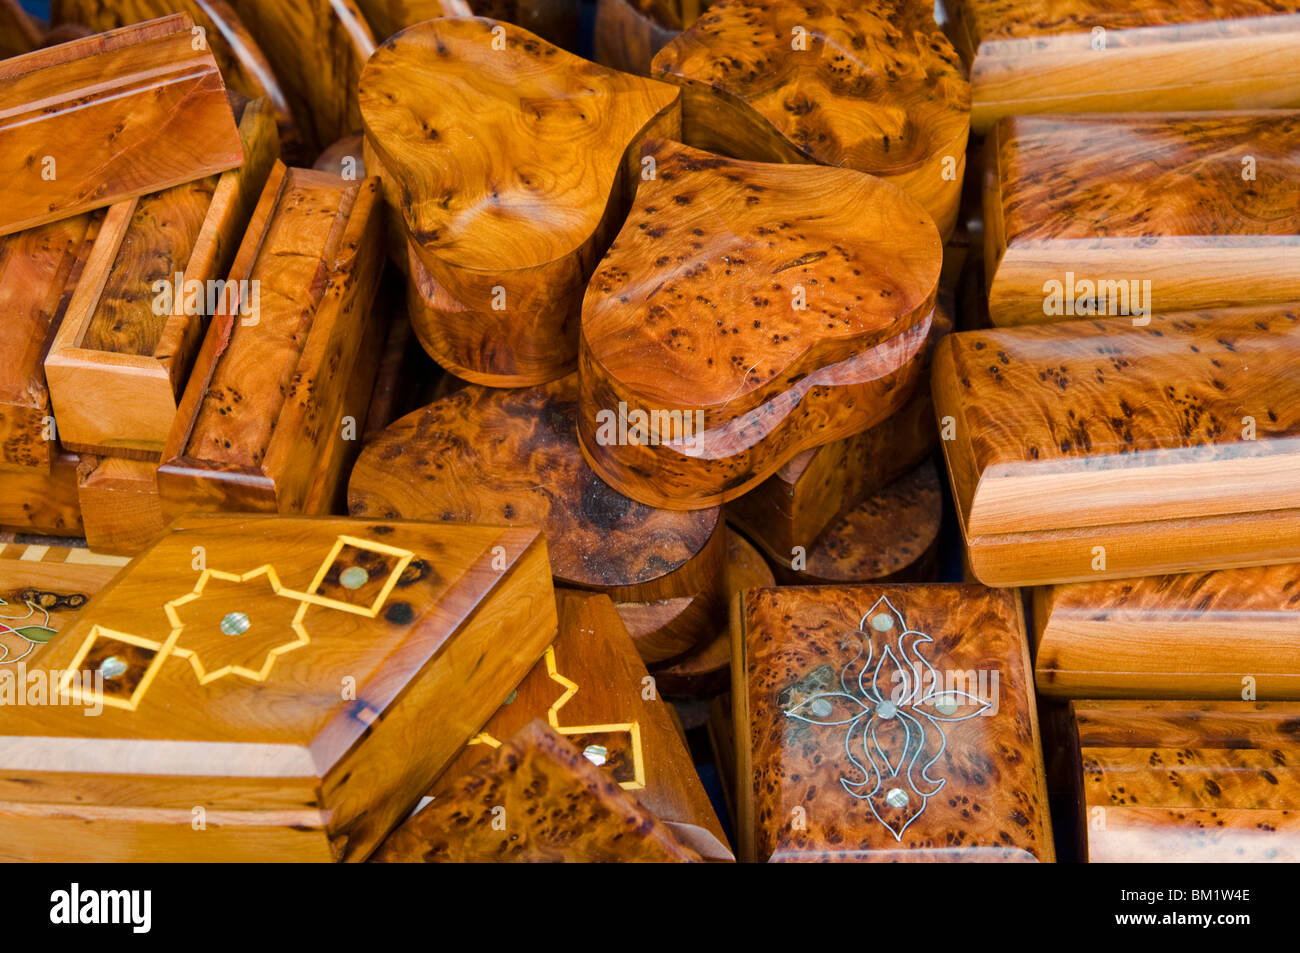 Briar-root and thuya boxes for sale in the Old City, Essaouira, Morocco, North Africa, Africa - Stock Image